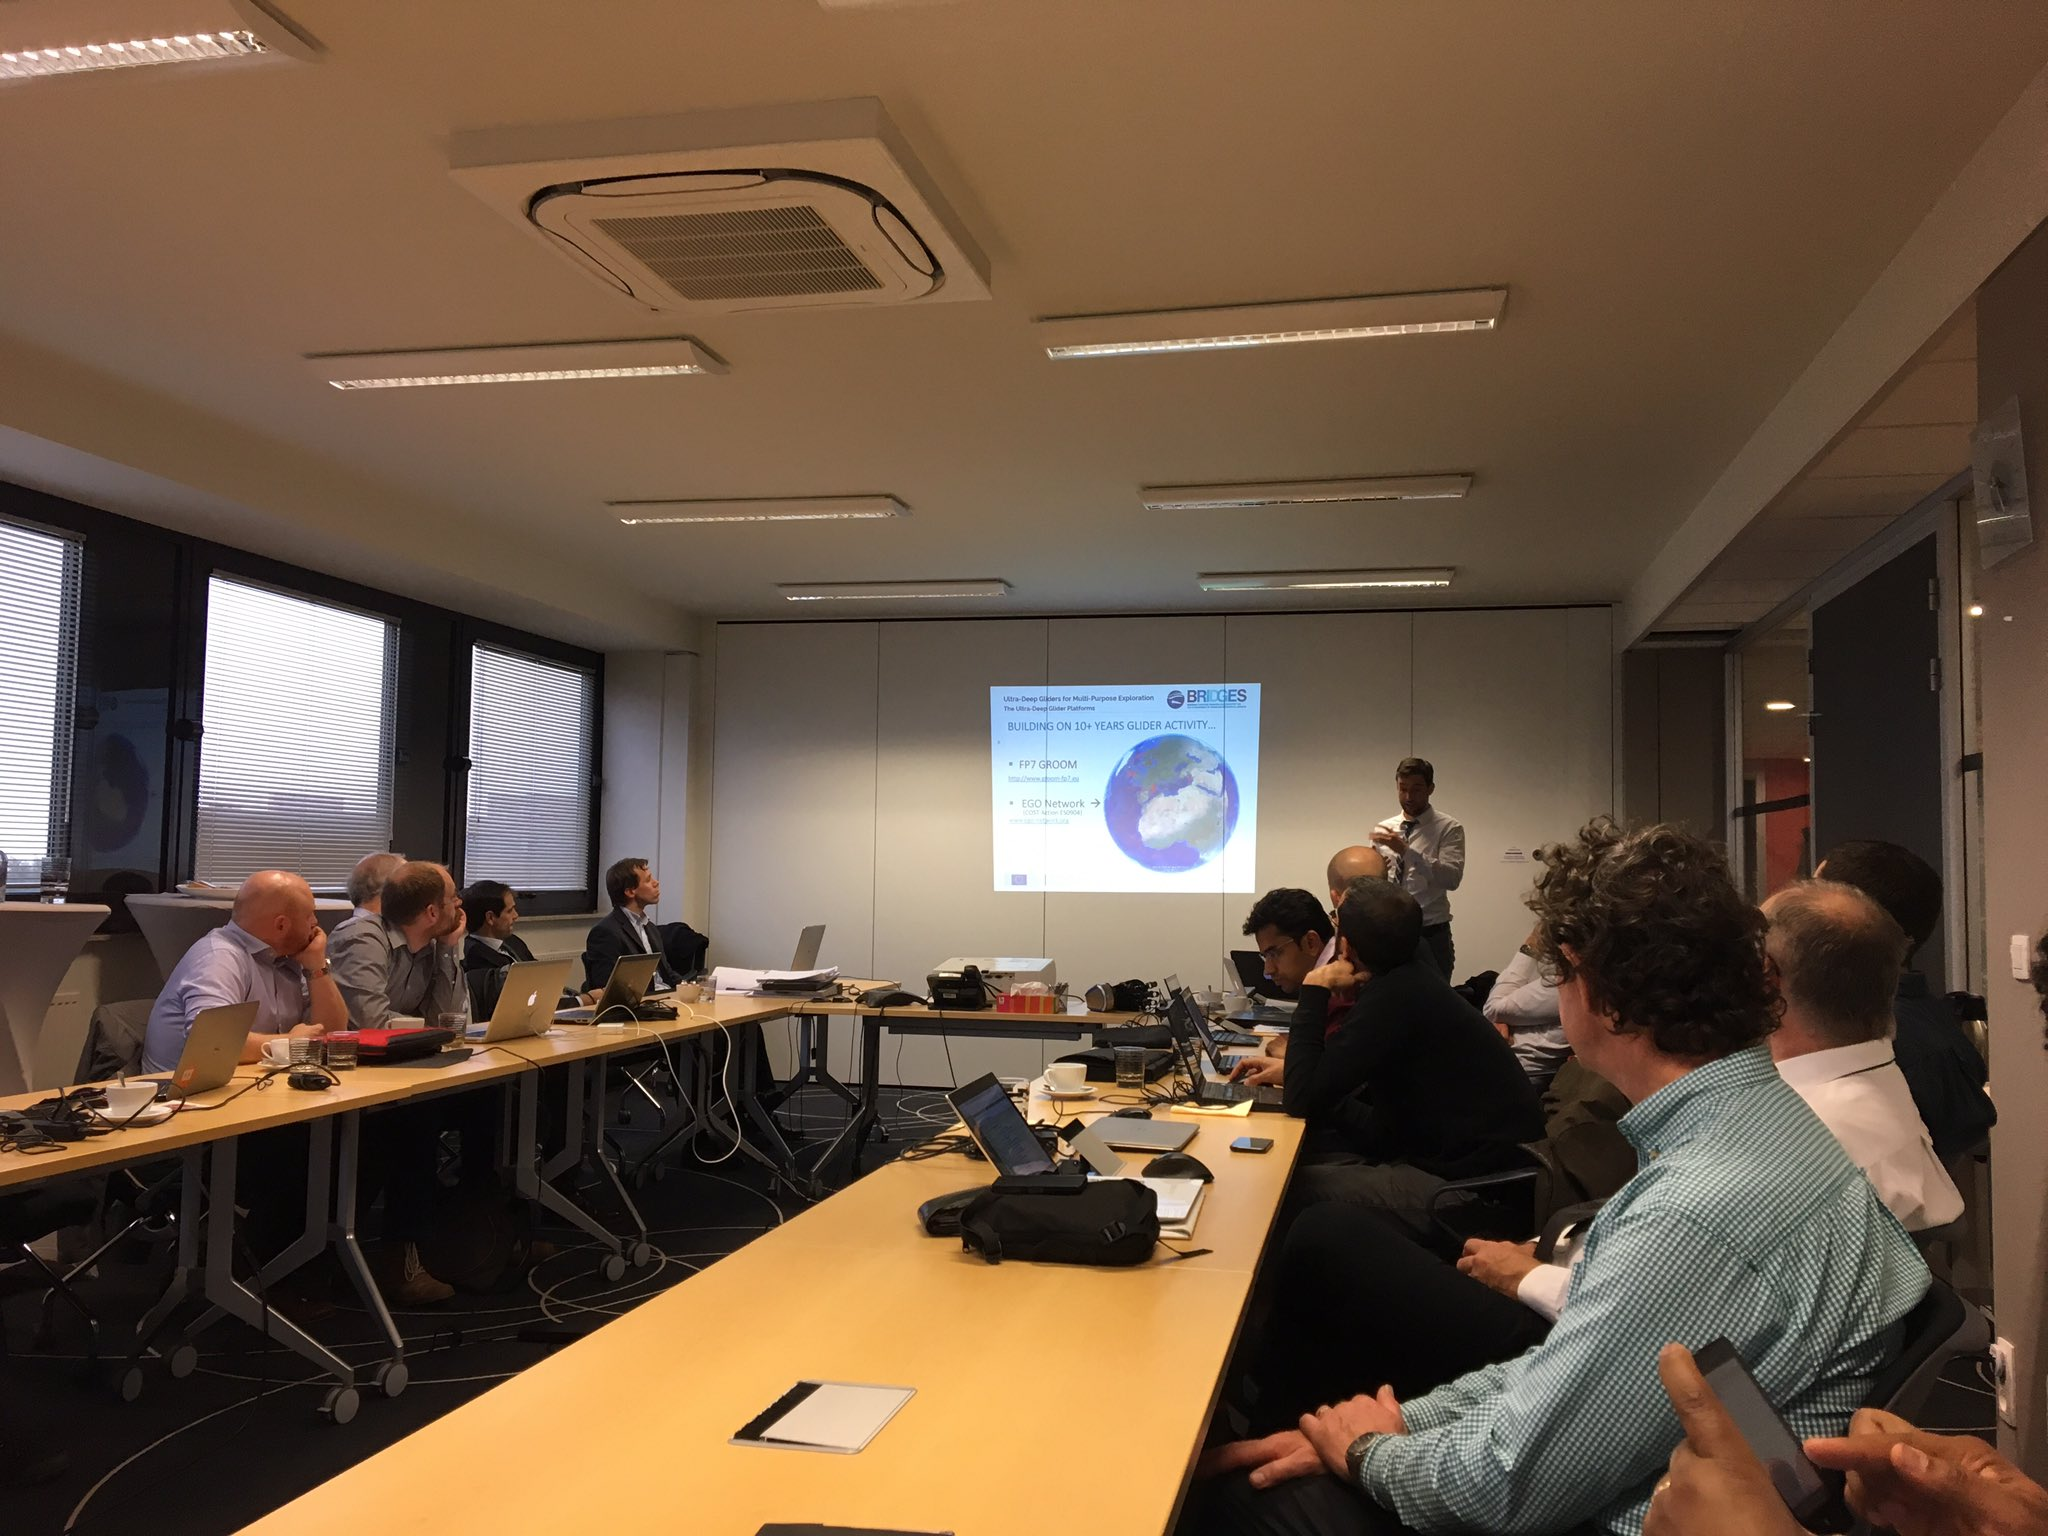 BRIDGES review presentations at SpaceApplications, Brussels, 0ct 2016